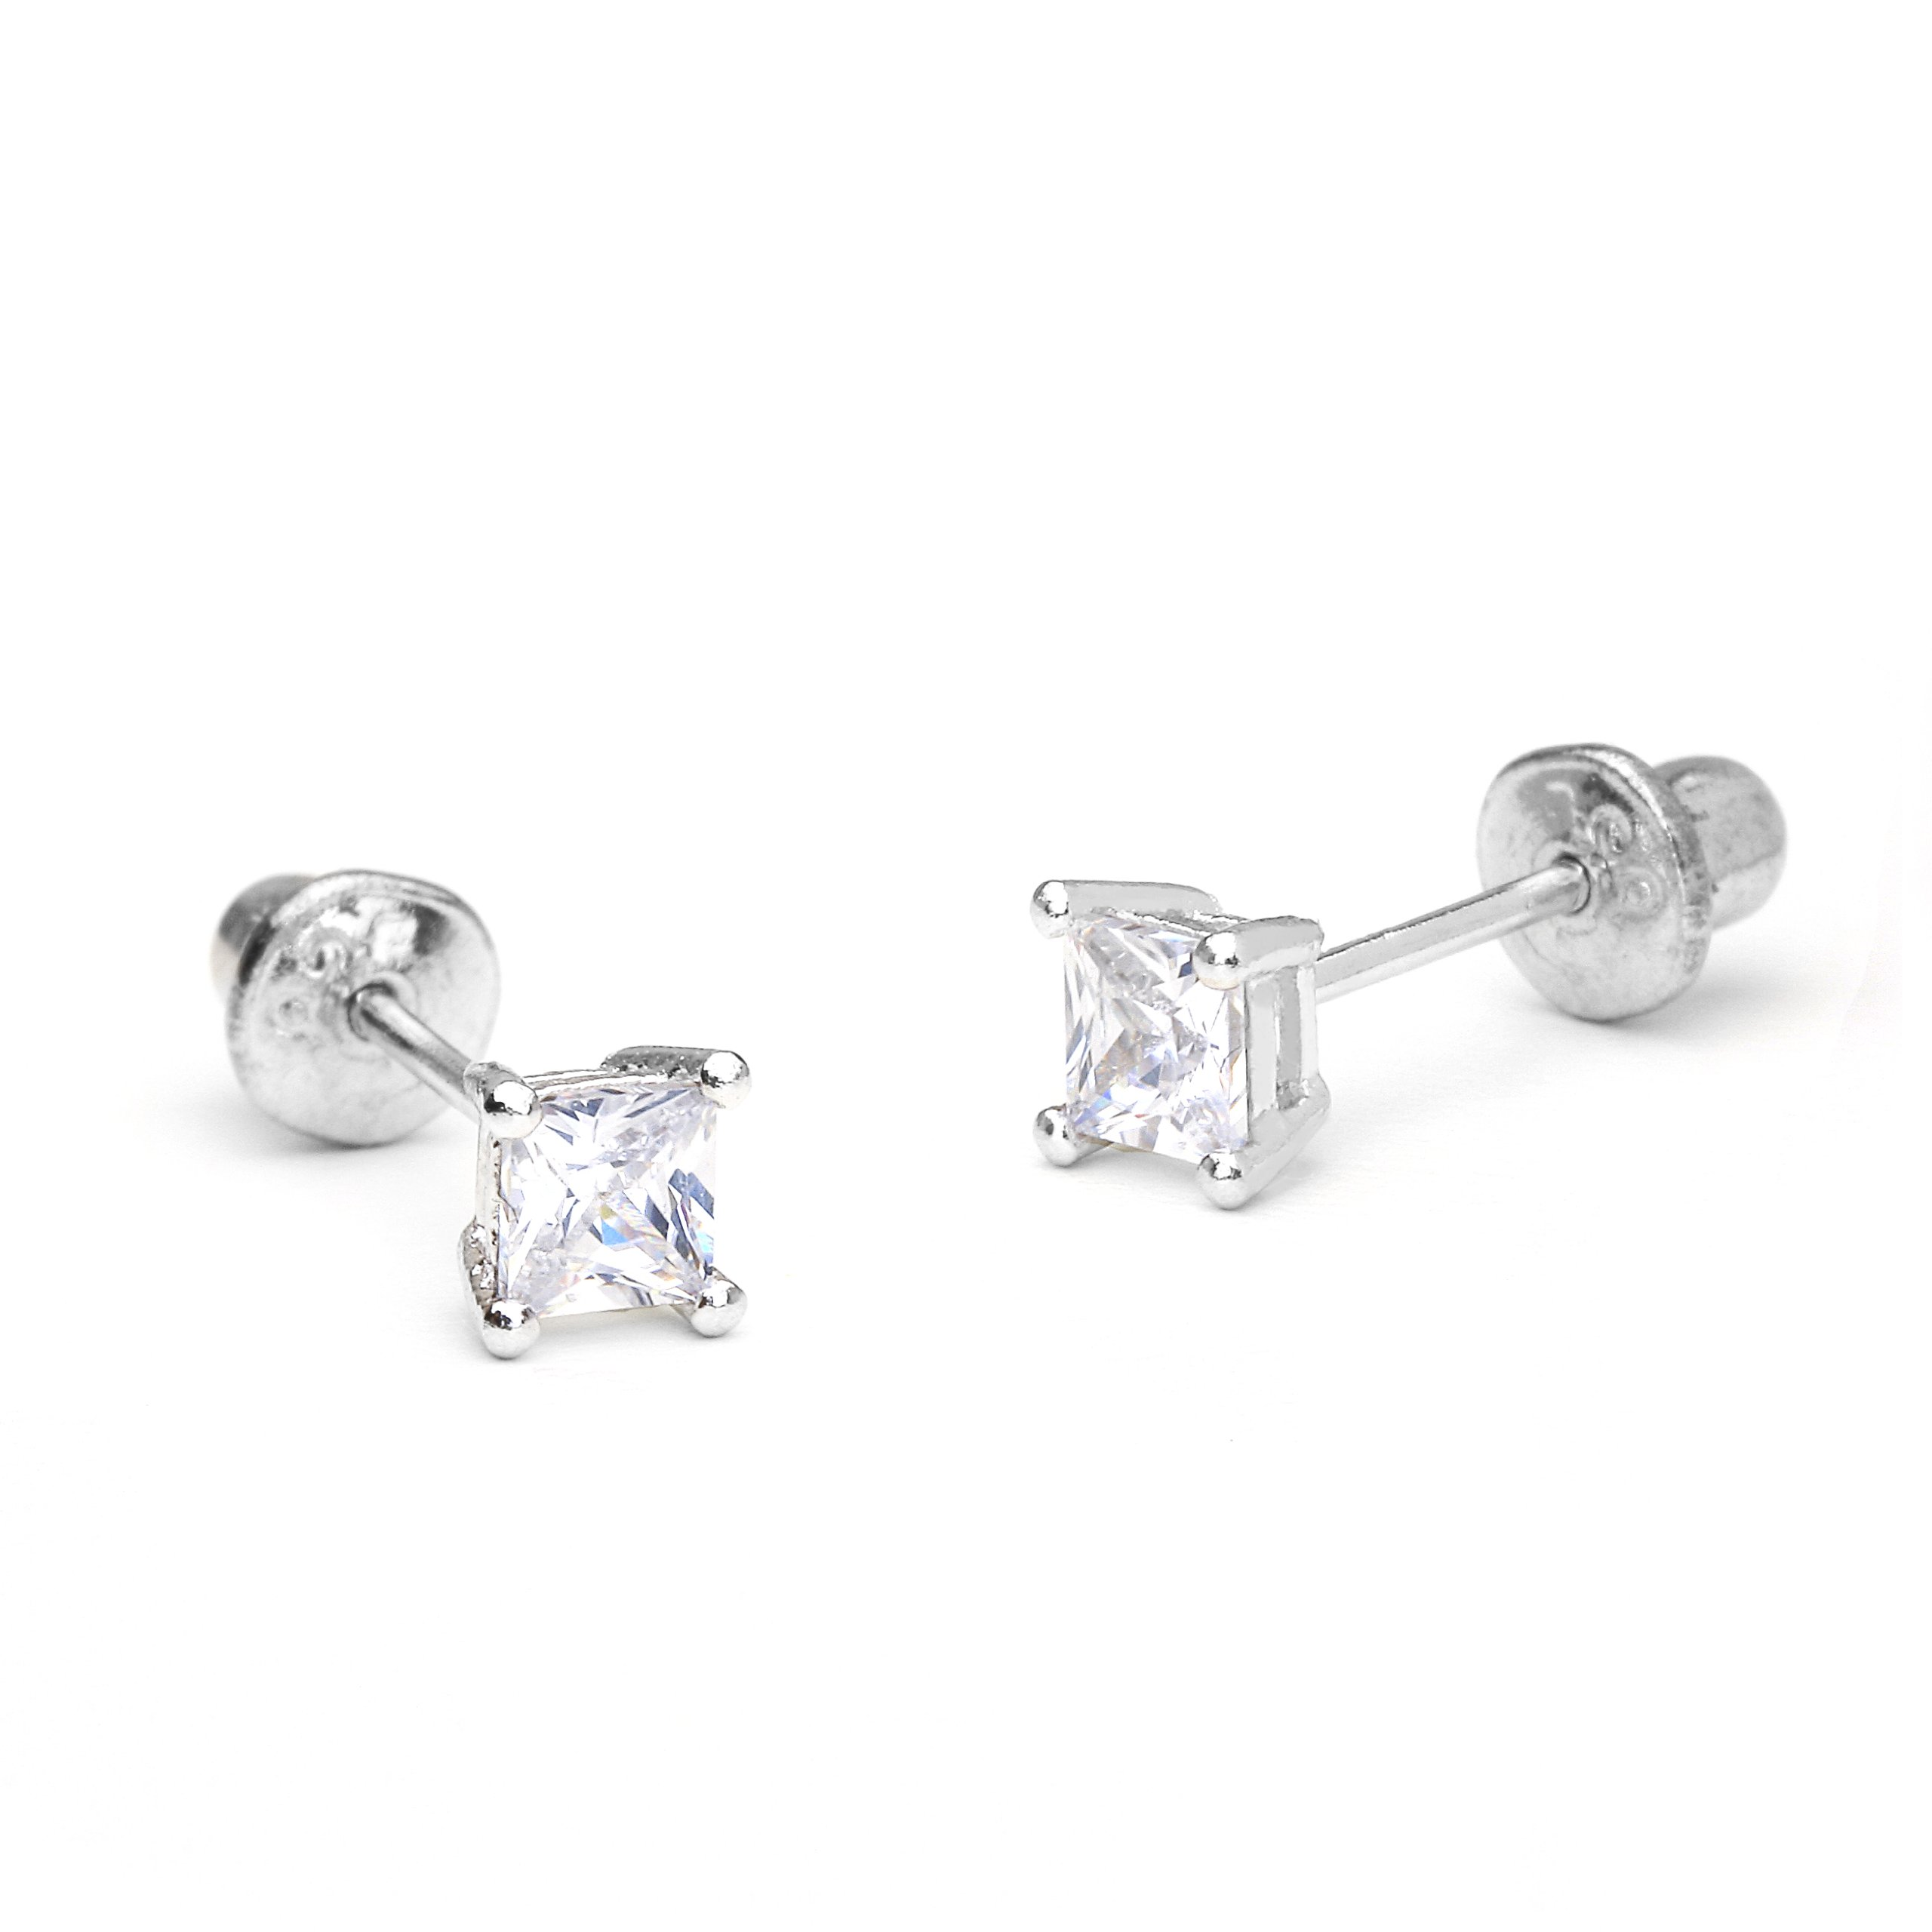 925 Sterling Silver Rhodium Plated 3mm Princess Cut Cubic Zirconia Stud Screwback Baby Girls Earrings